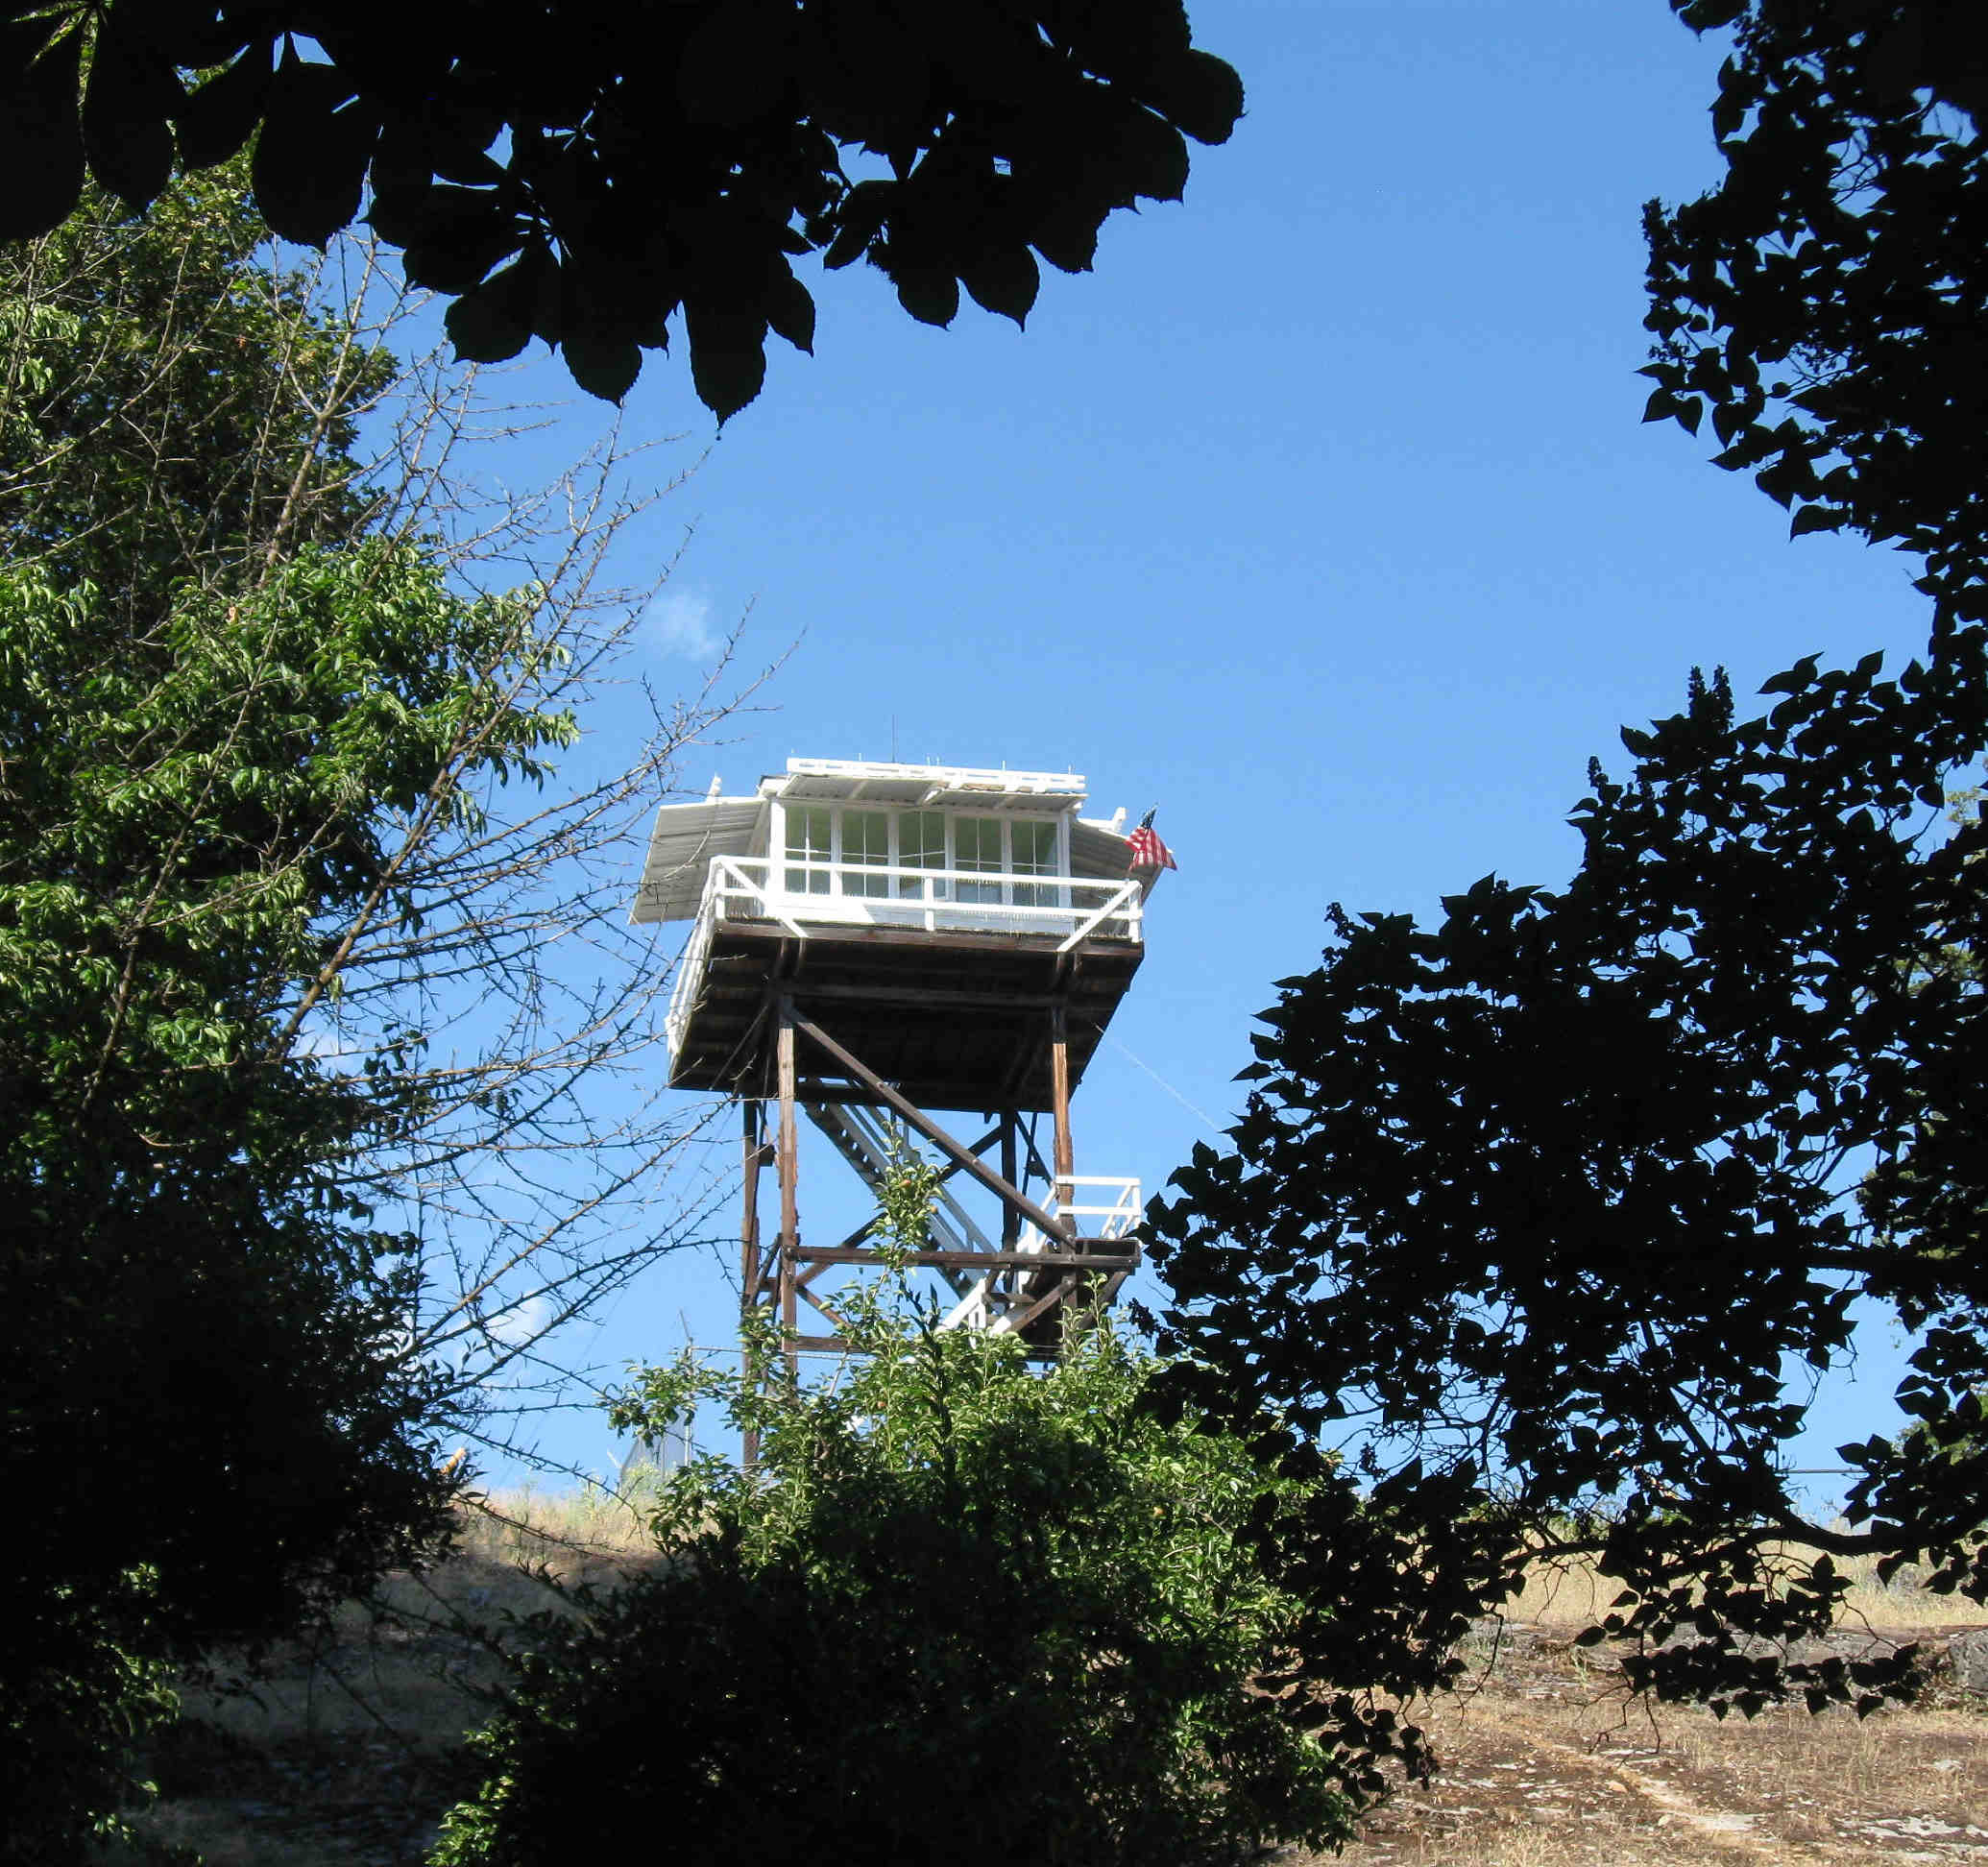 Graves Mountain lookout tower